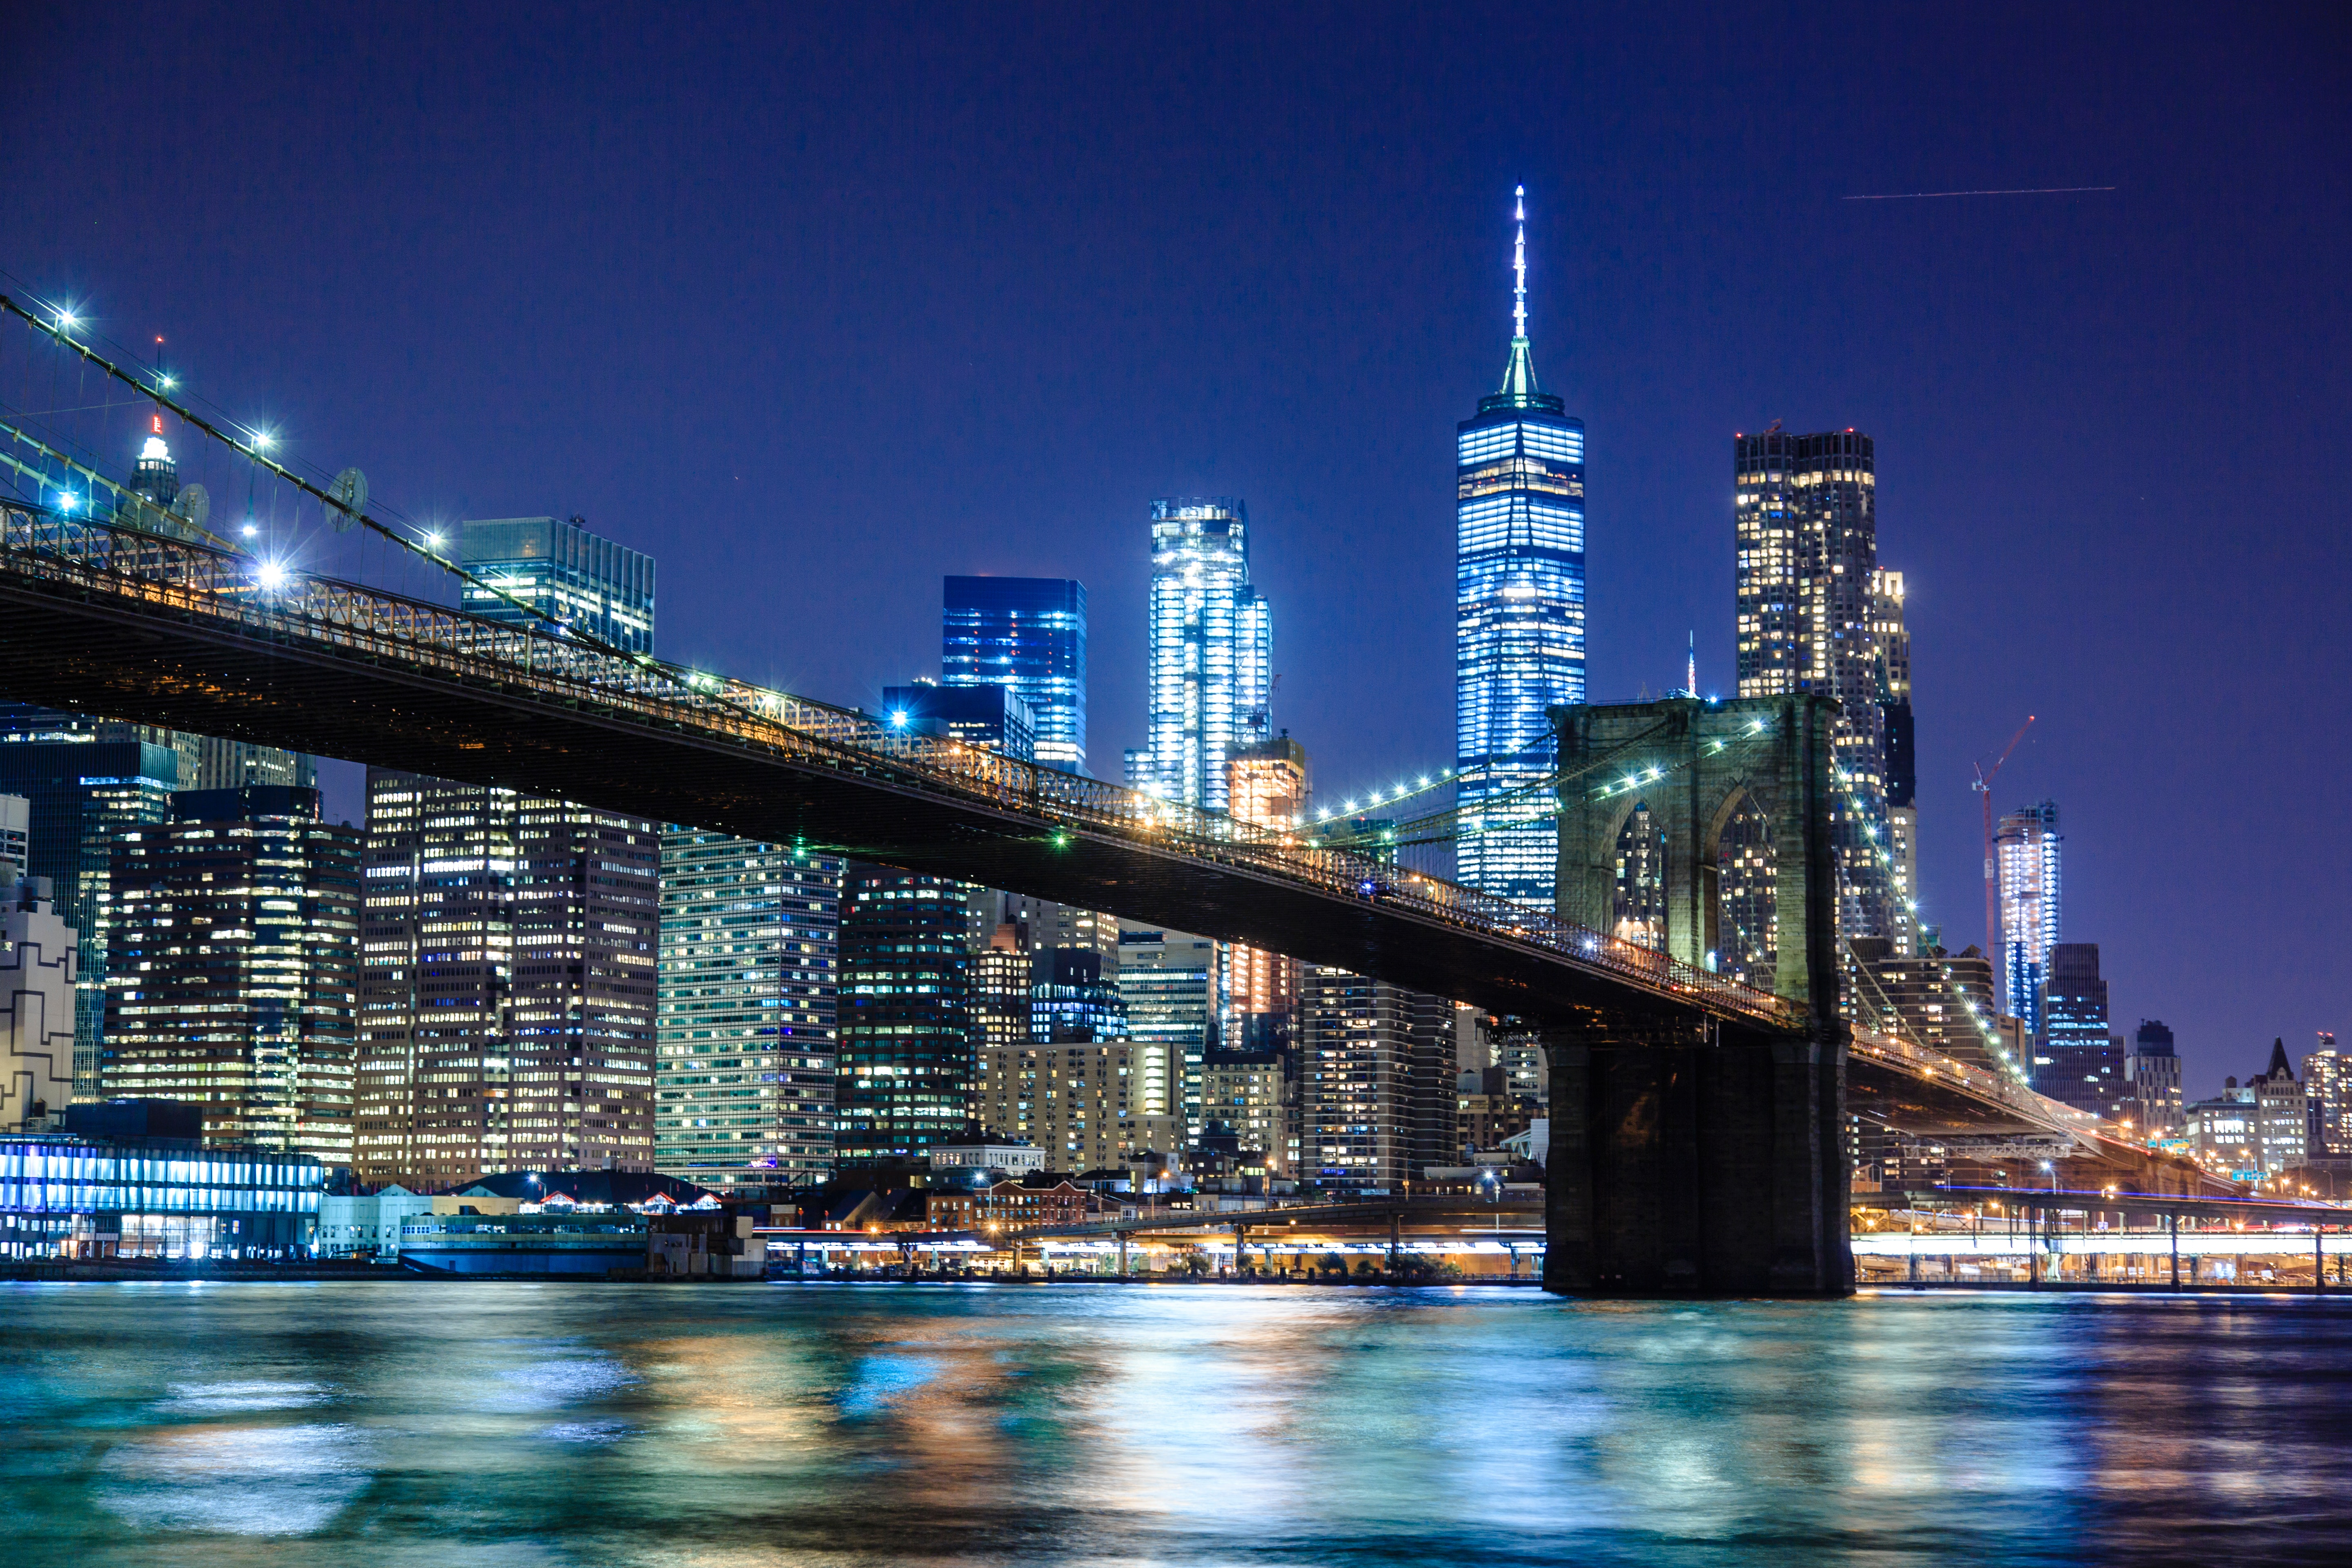 Each New York City Background Image Can Be Downloaded And Used For Free Just Click On A Wallpaper Picture You Like The Pictures Also Work Very Well As